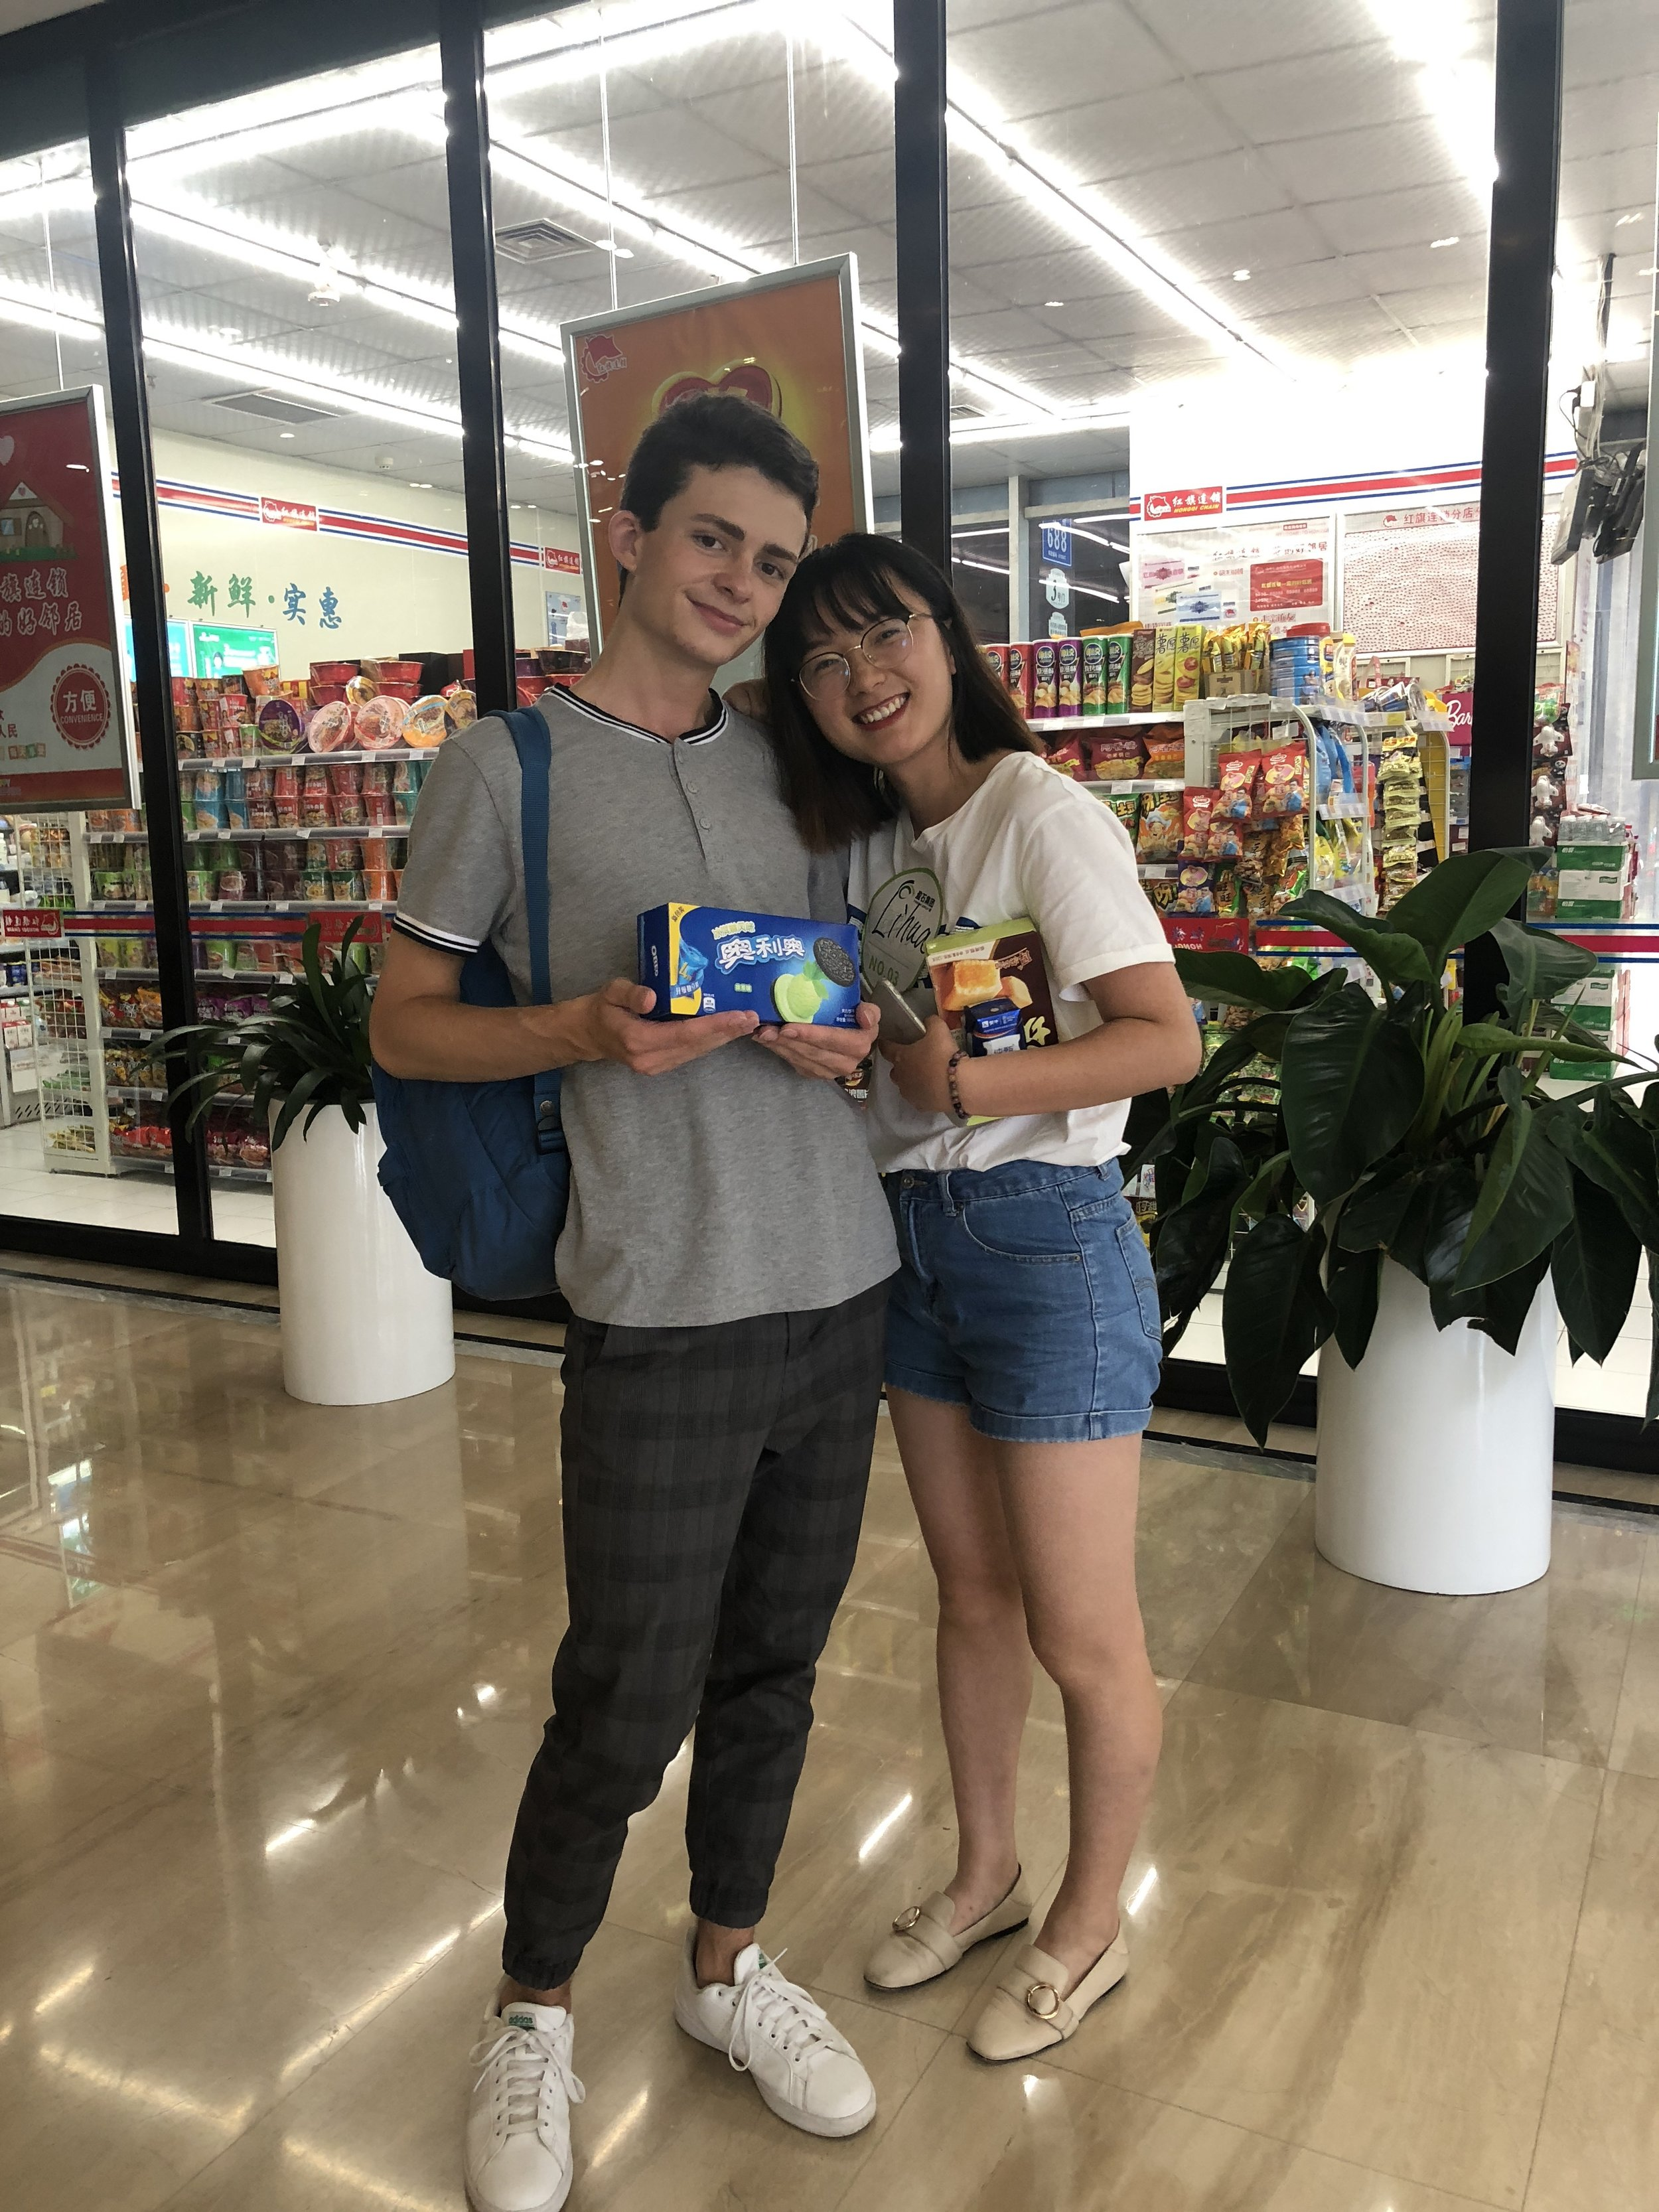 One of my friends gave me Chinese Oreos as a gift!